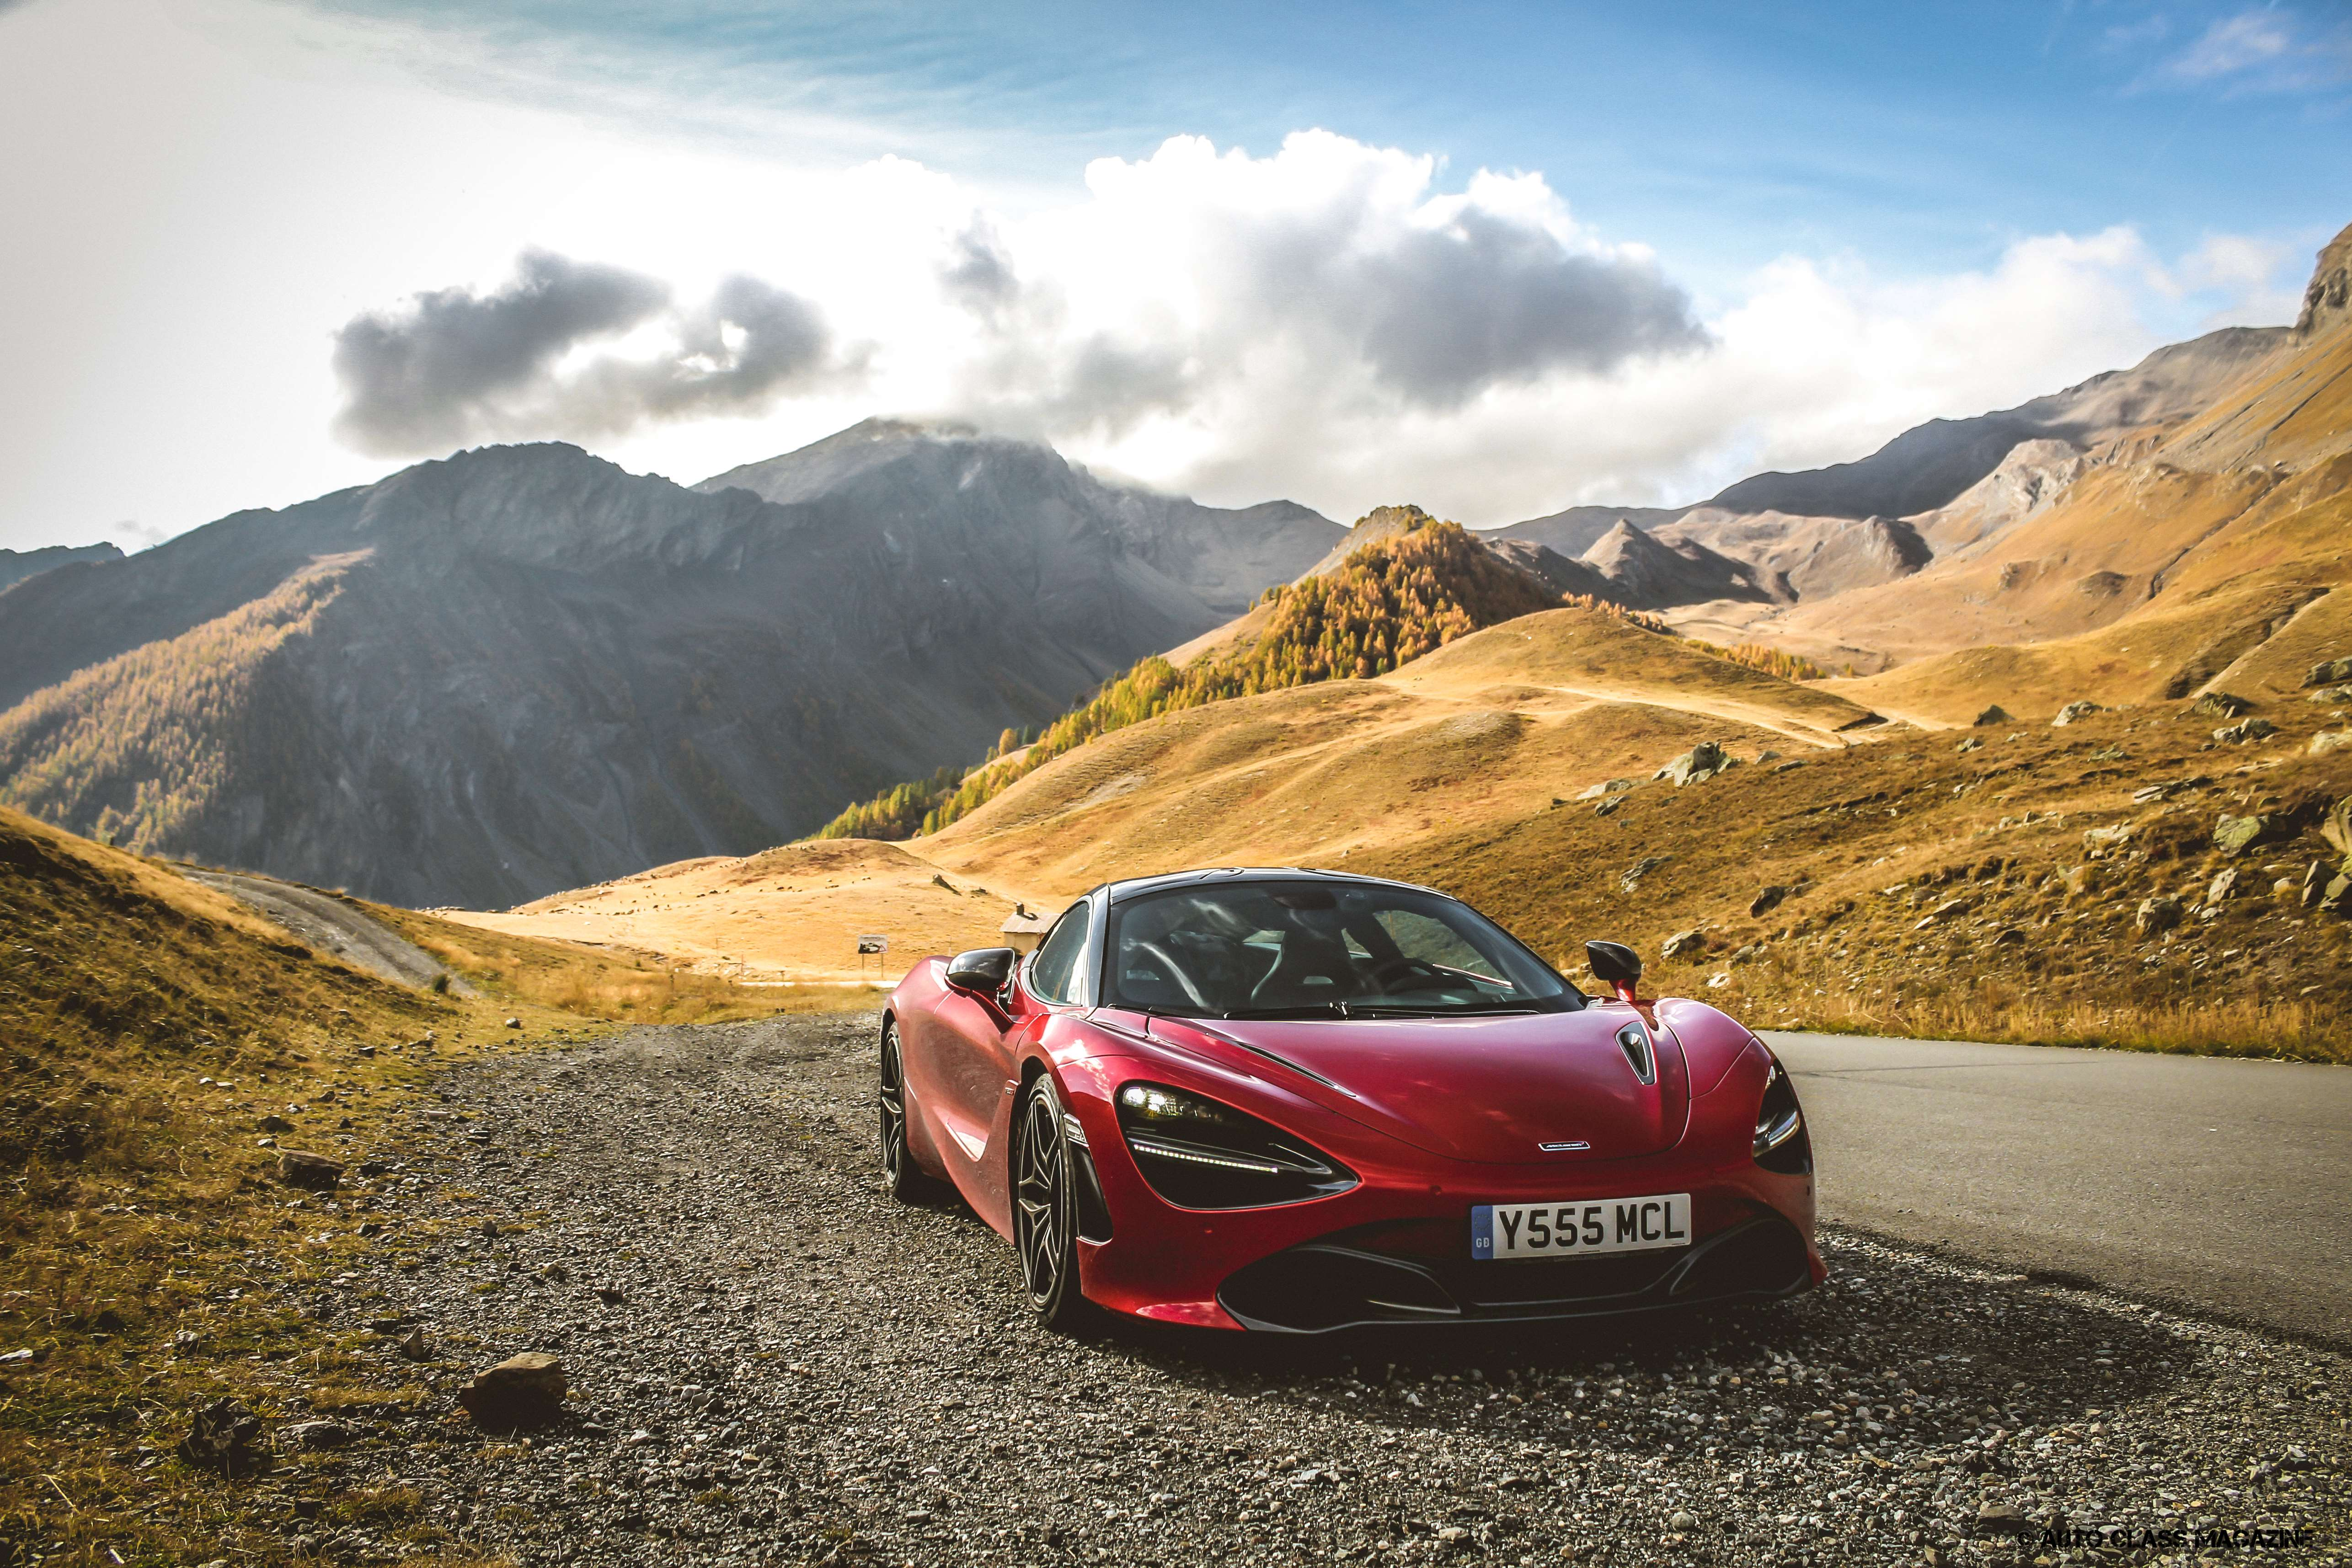 2048x1152 Red Mclaren 720 S 2048x1152 Resolution Hd 4k Wallpapers Images Backgrounds Photos And Pictures